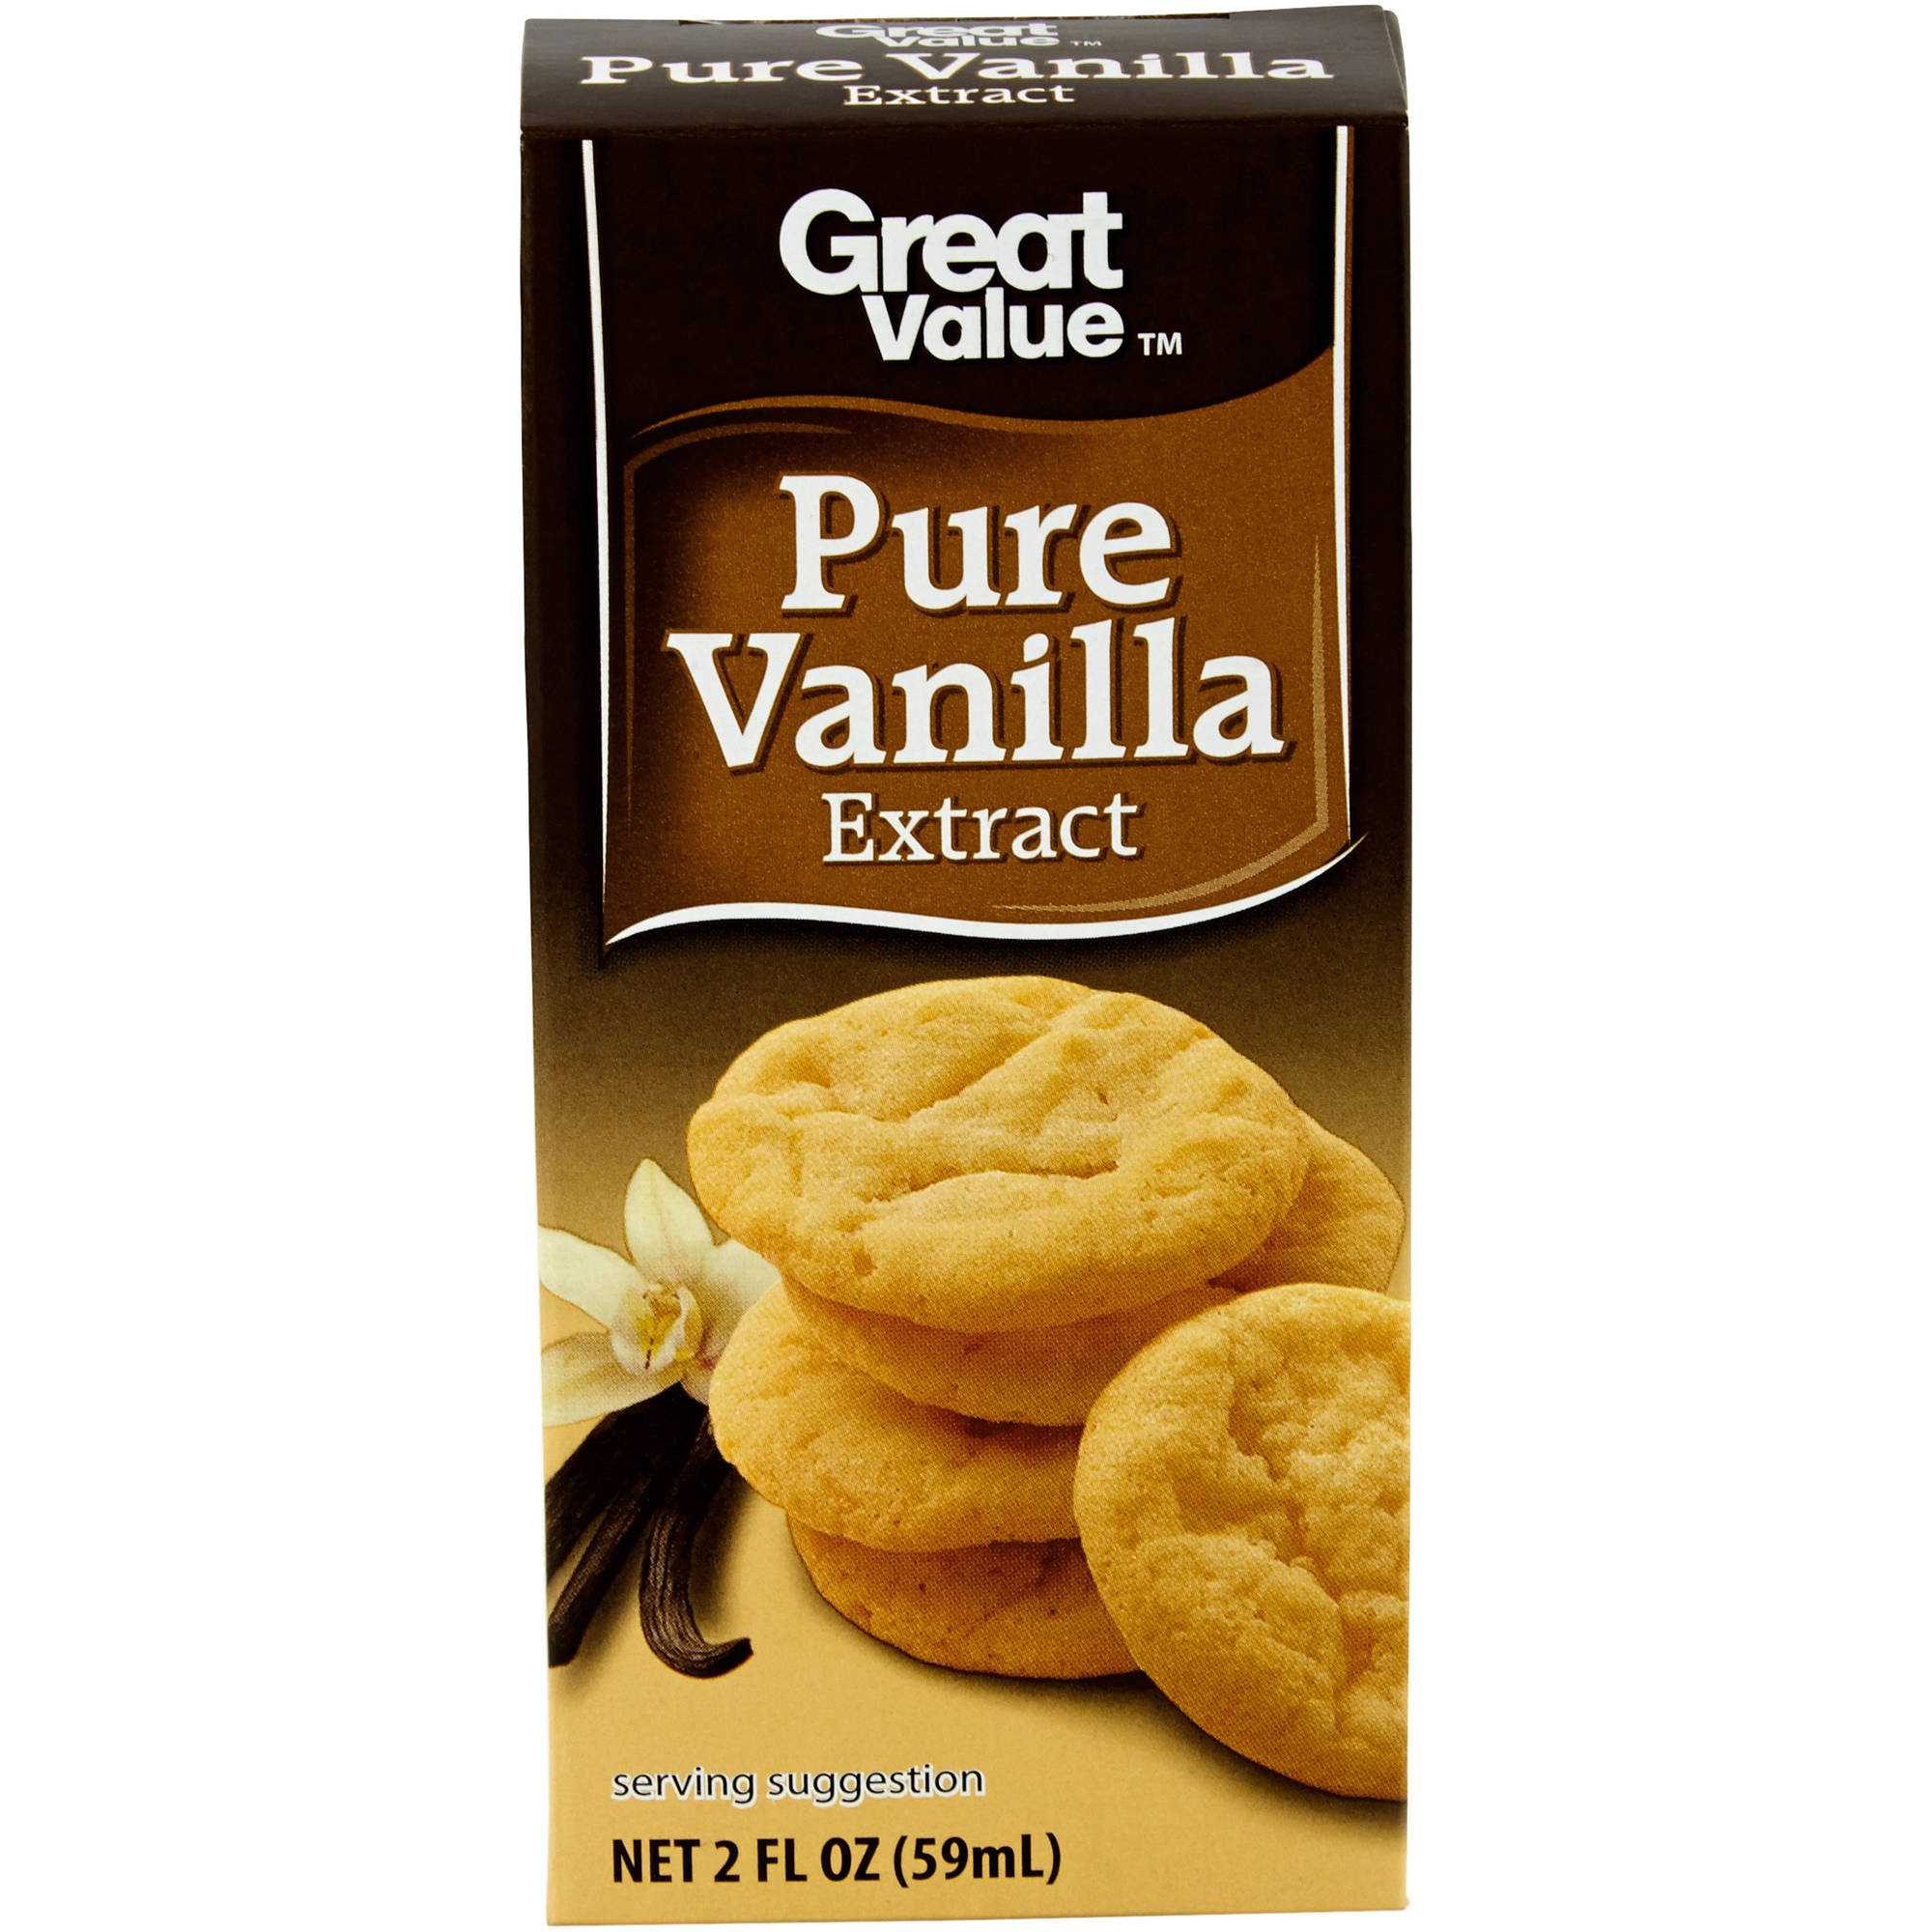 Great Value: Extract Pure Vanilla, 2 Fl Oz